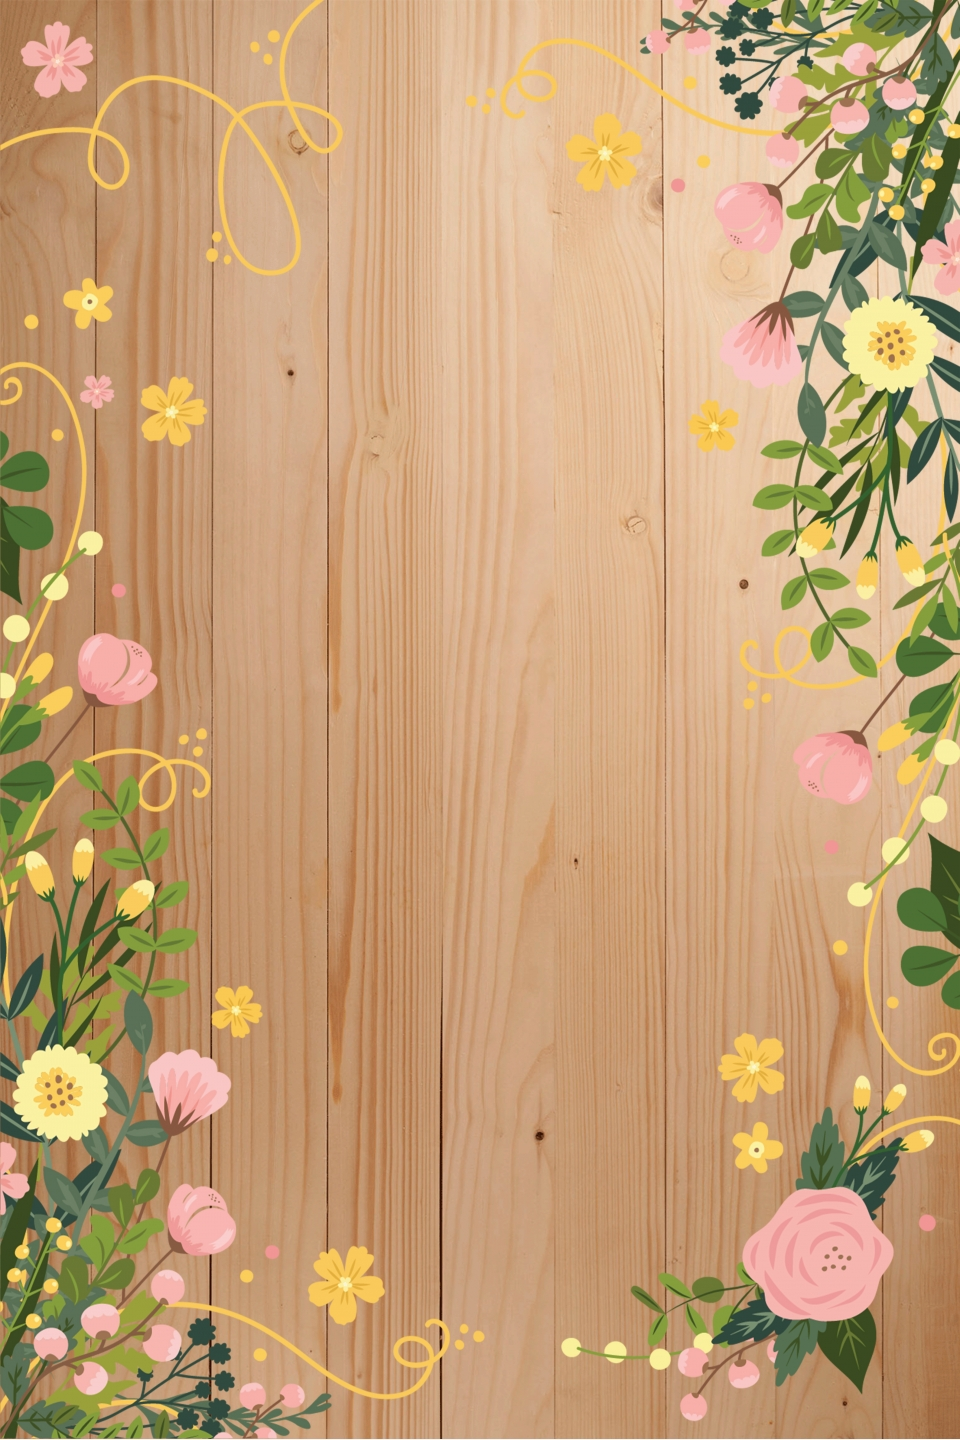 Vector Literary Wooden Board Watercolor Flowers Border Background